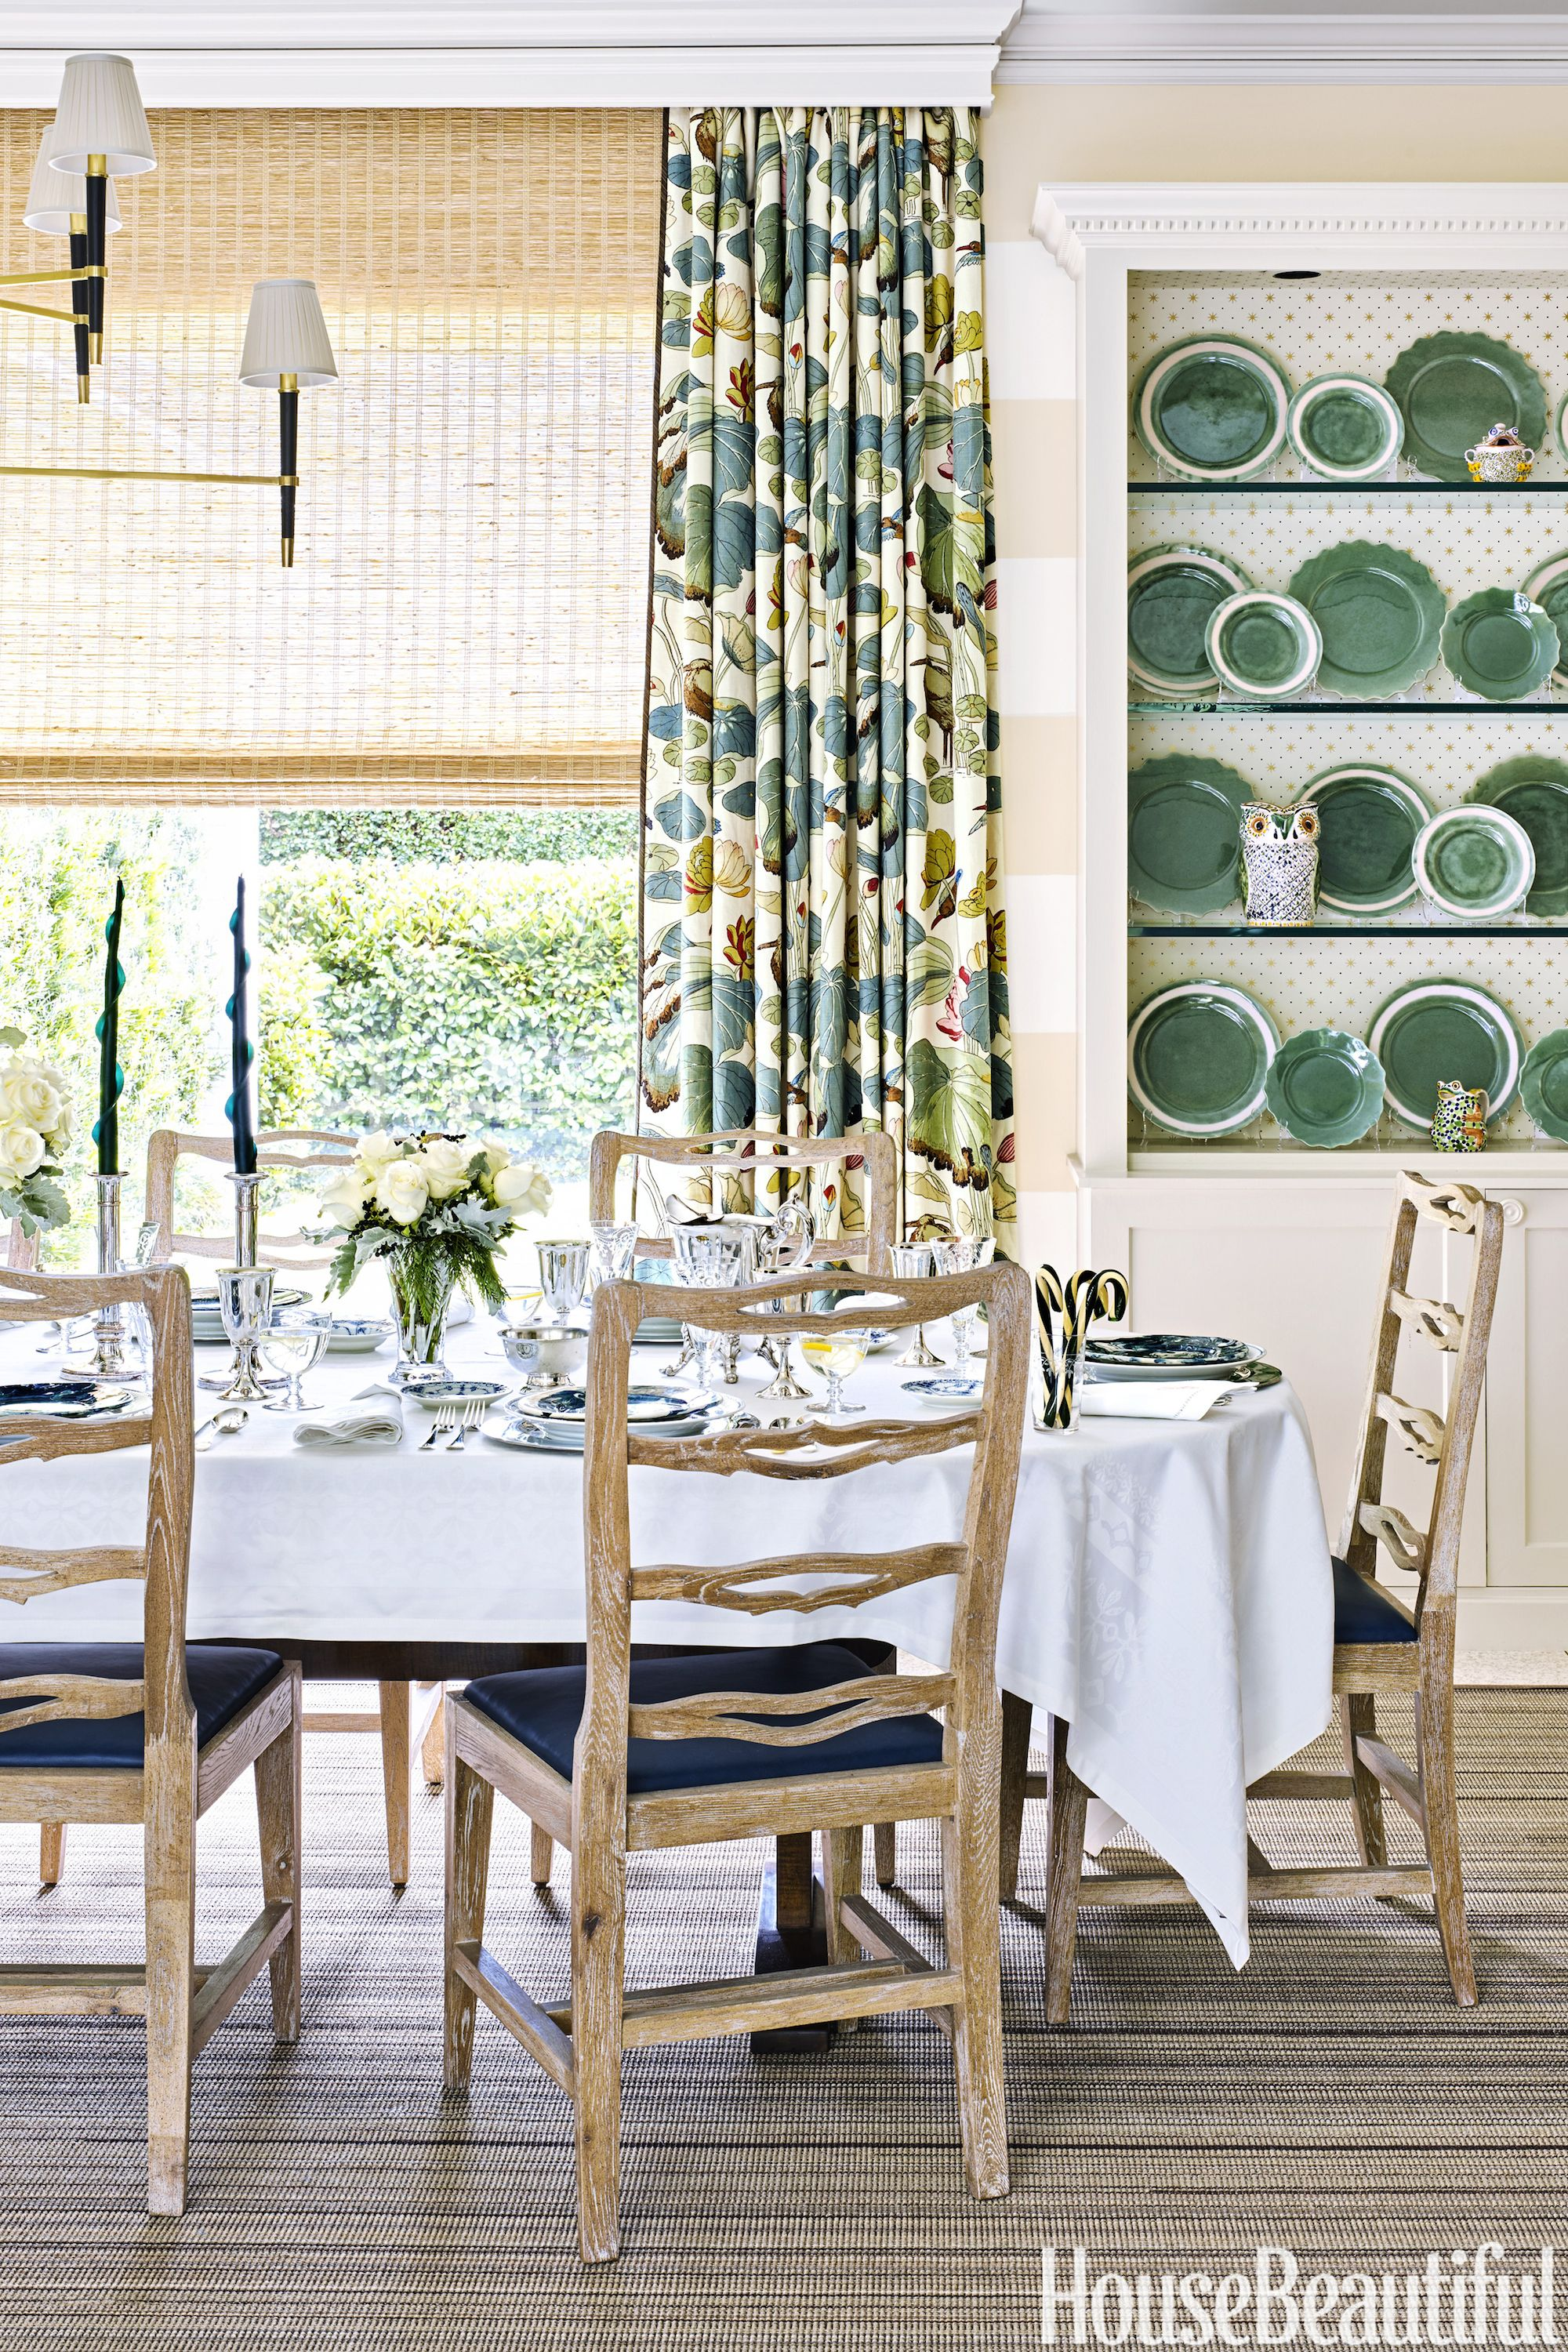 All Time Favorite Prints Nympheus Linen By Thomas OBrien For Lee Jofa The Dining Room Curtains In Her Texas Home South African Wonki Ware